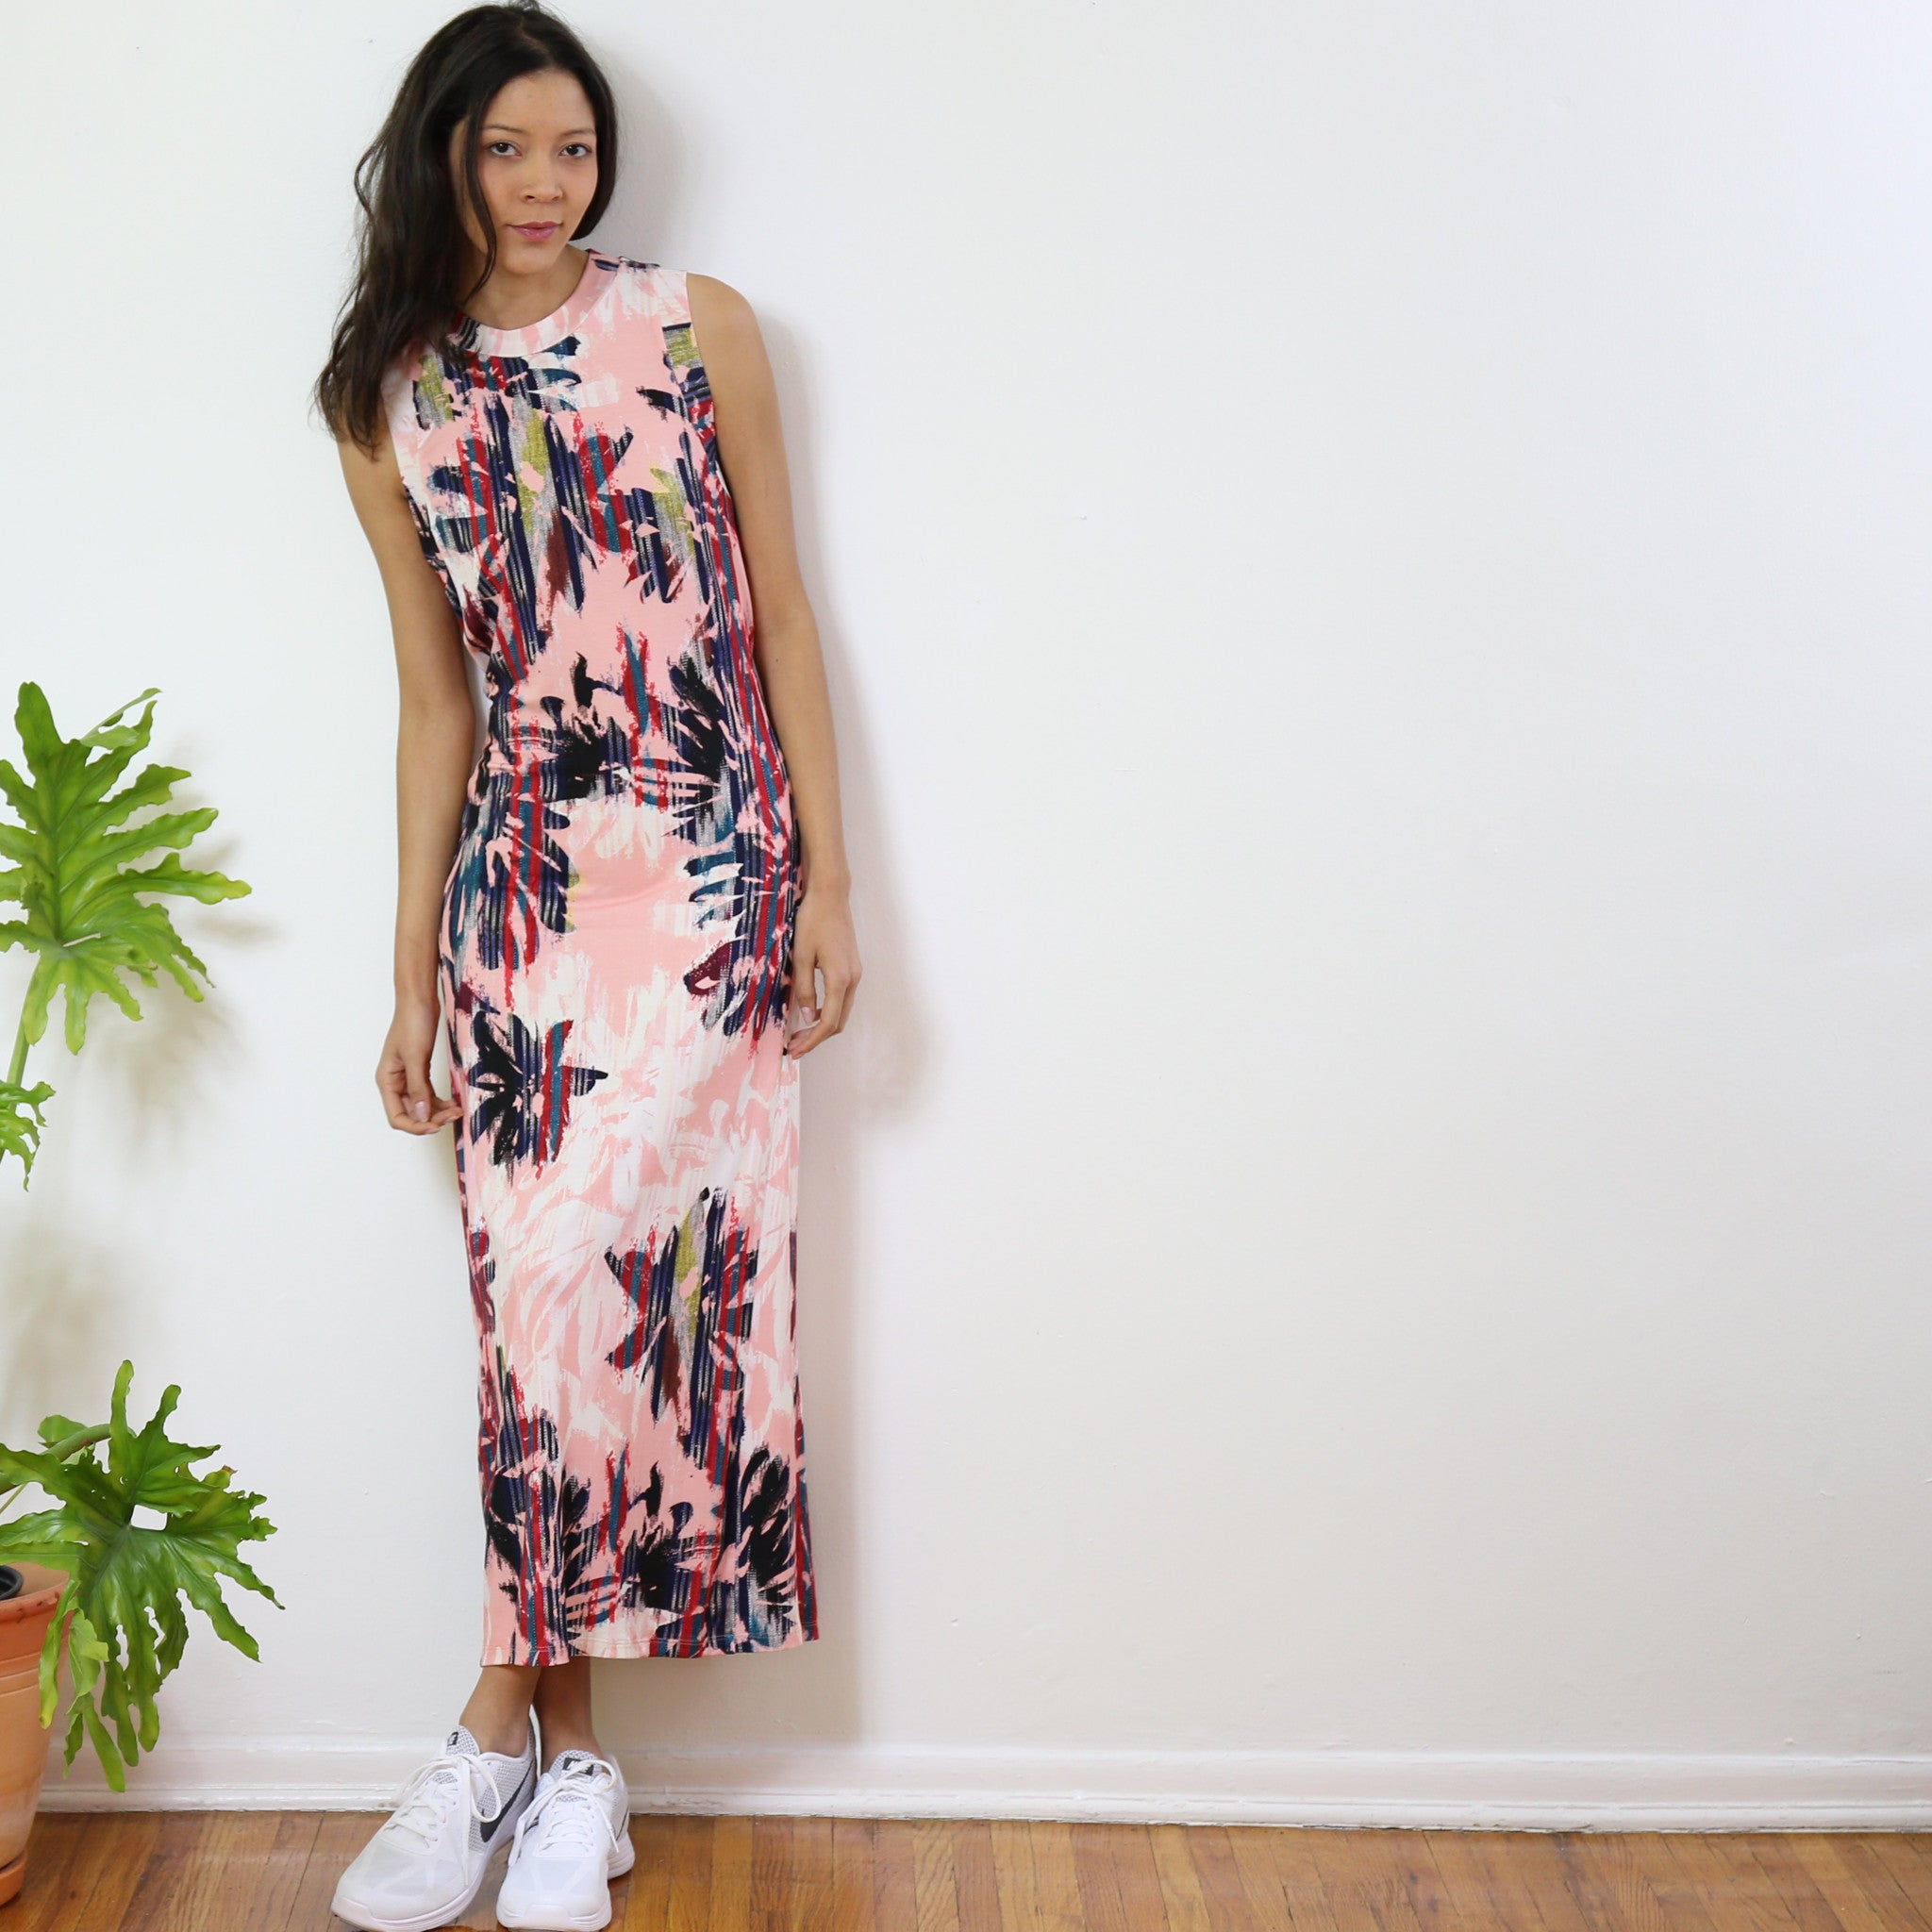 Albermarle Maxi Dress in Sport Your Coral Print